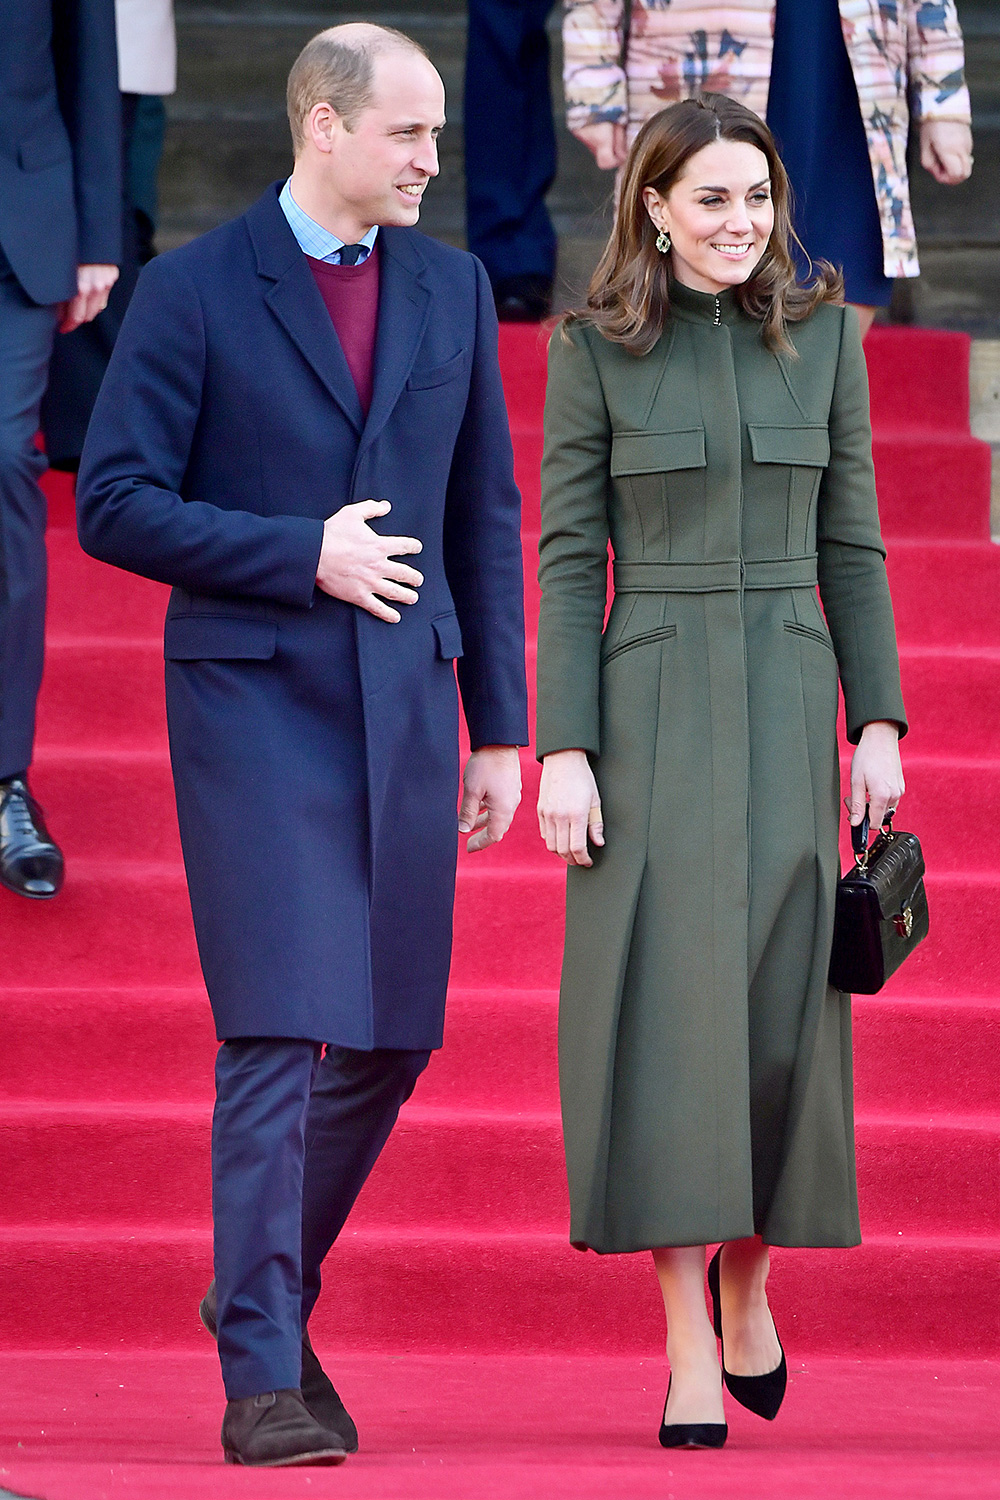 Prince William and Catherine Duchess of Cambridge visit to Bradford, UK - 15 Jan 2020